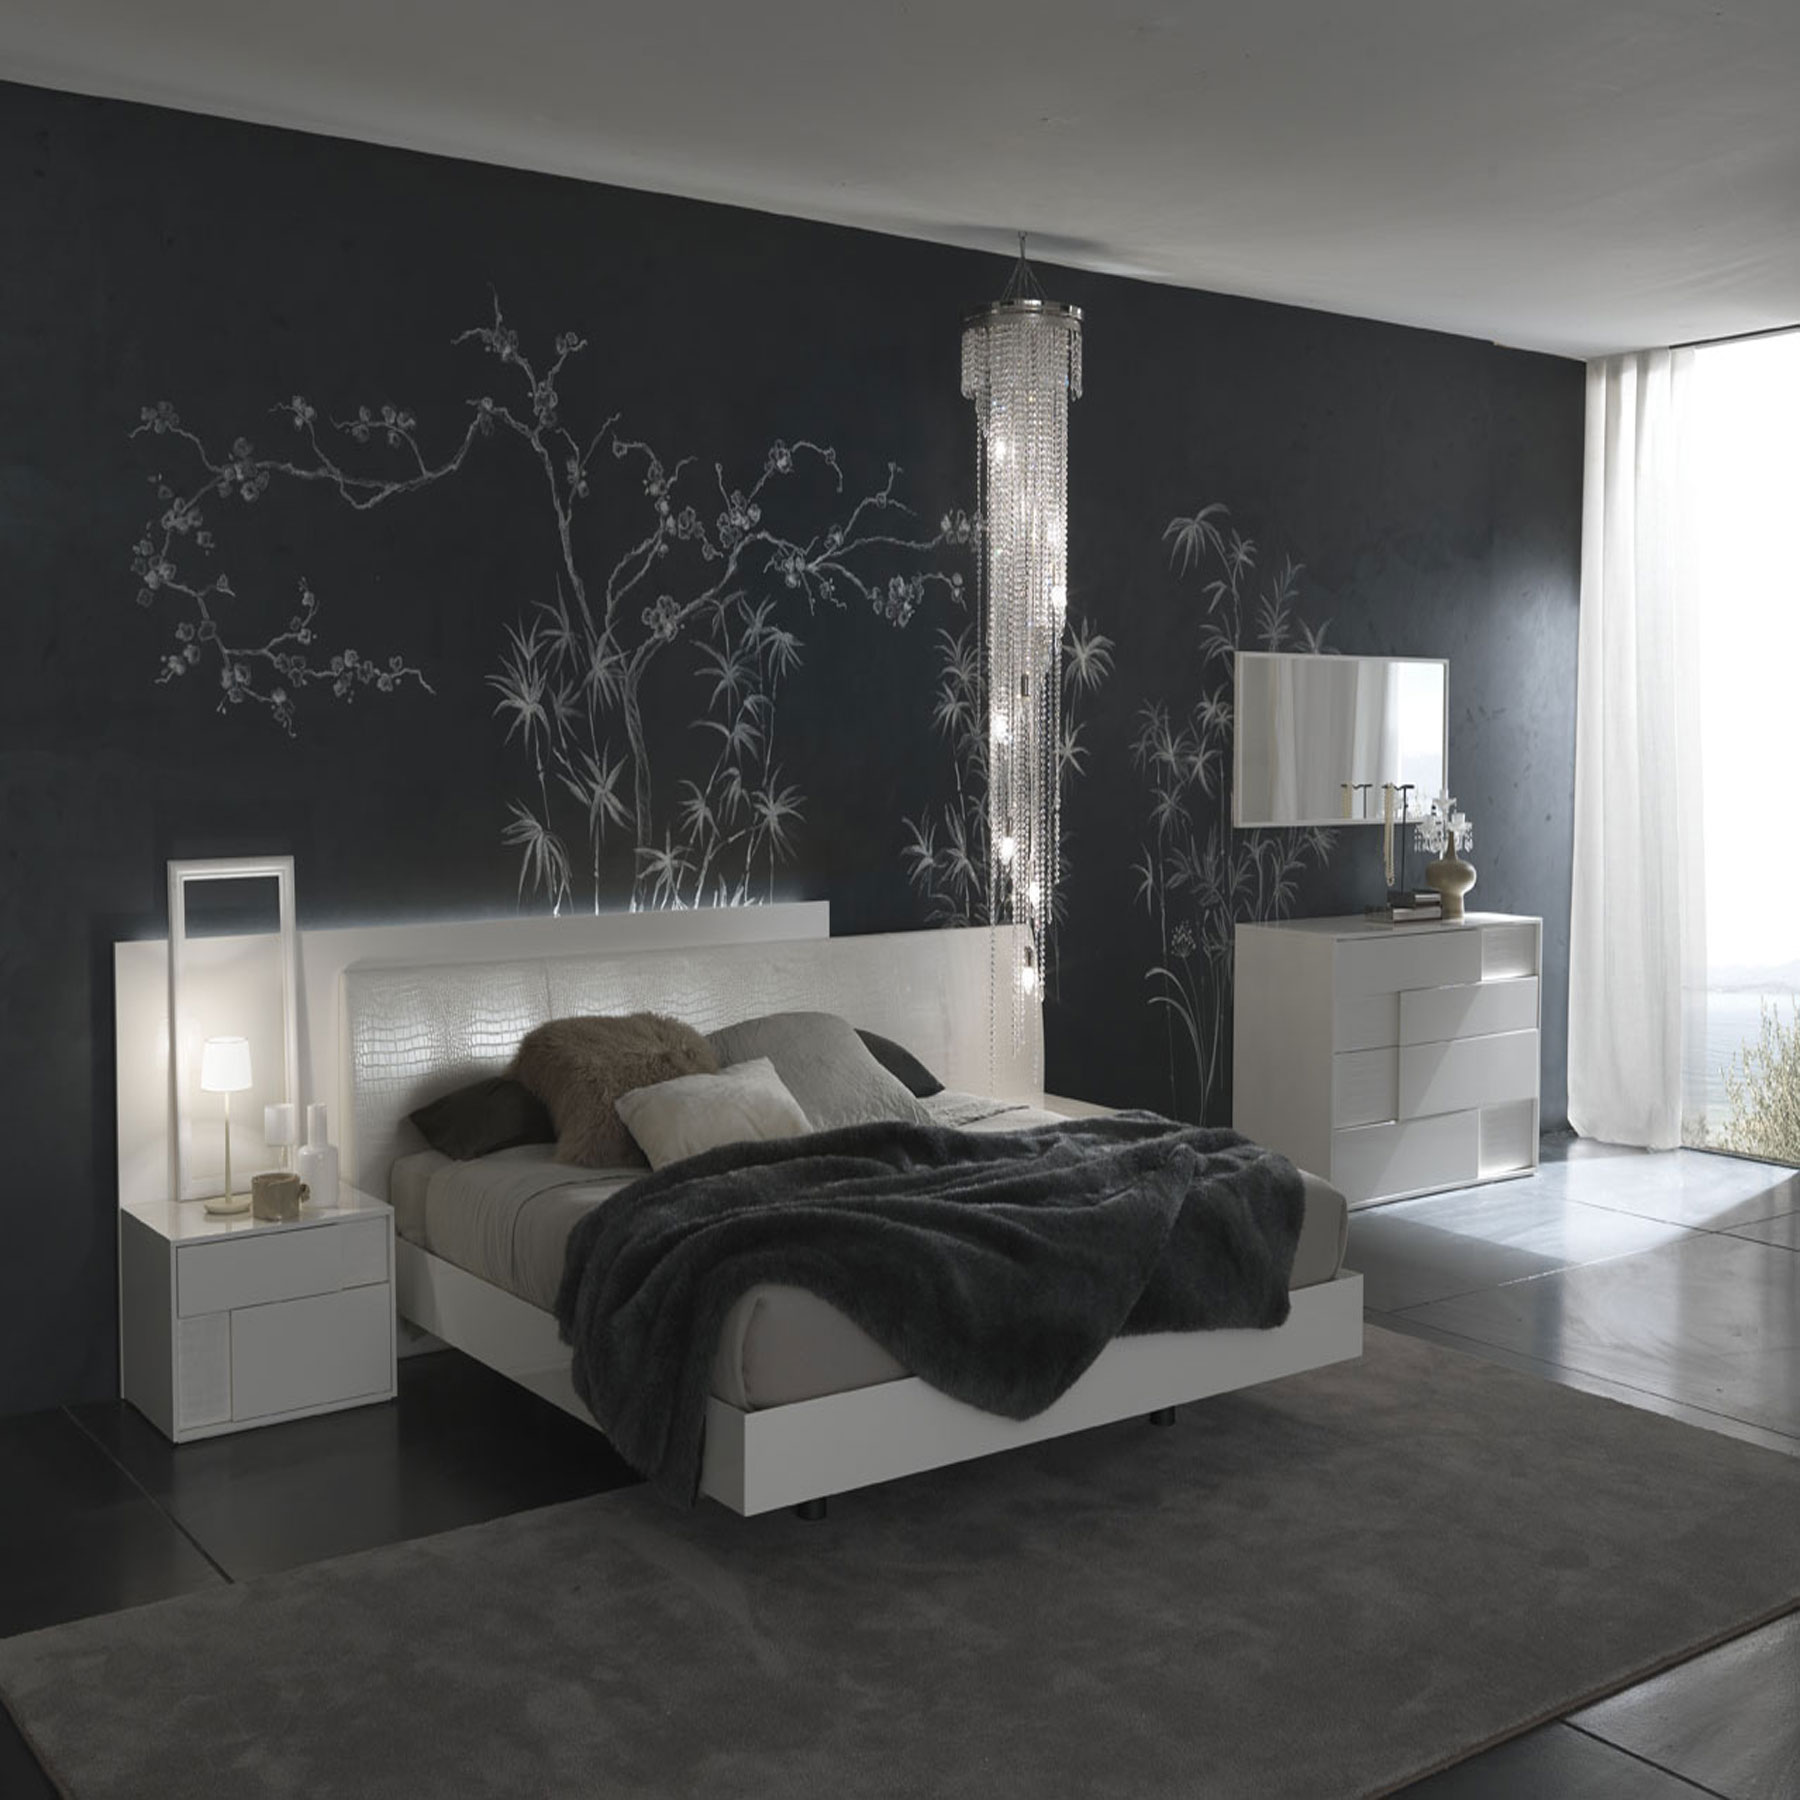 50 Best Bedrooms With White Furniture for 2020 on Bedroom Wall Decor  id=89095